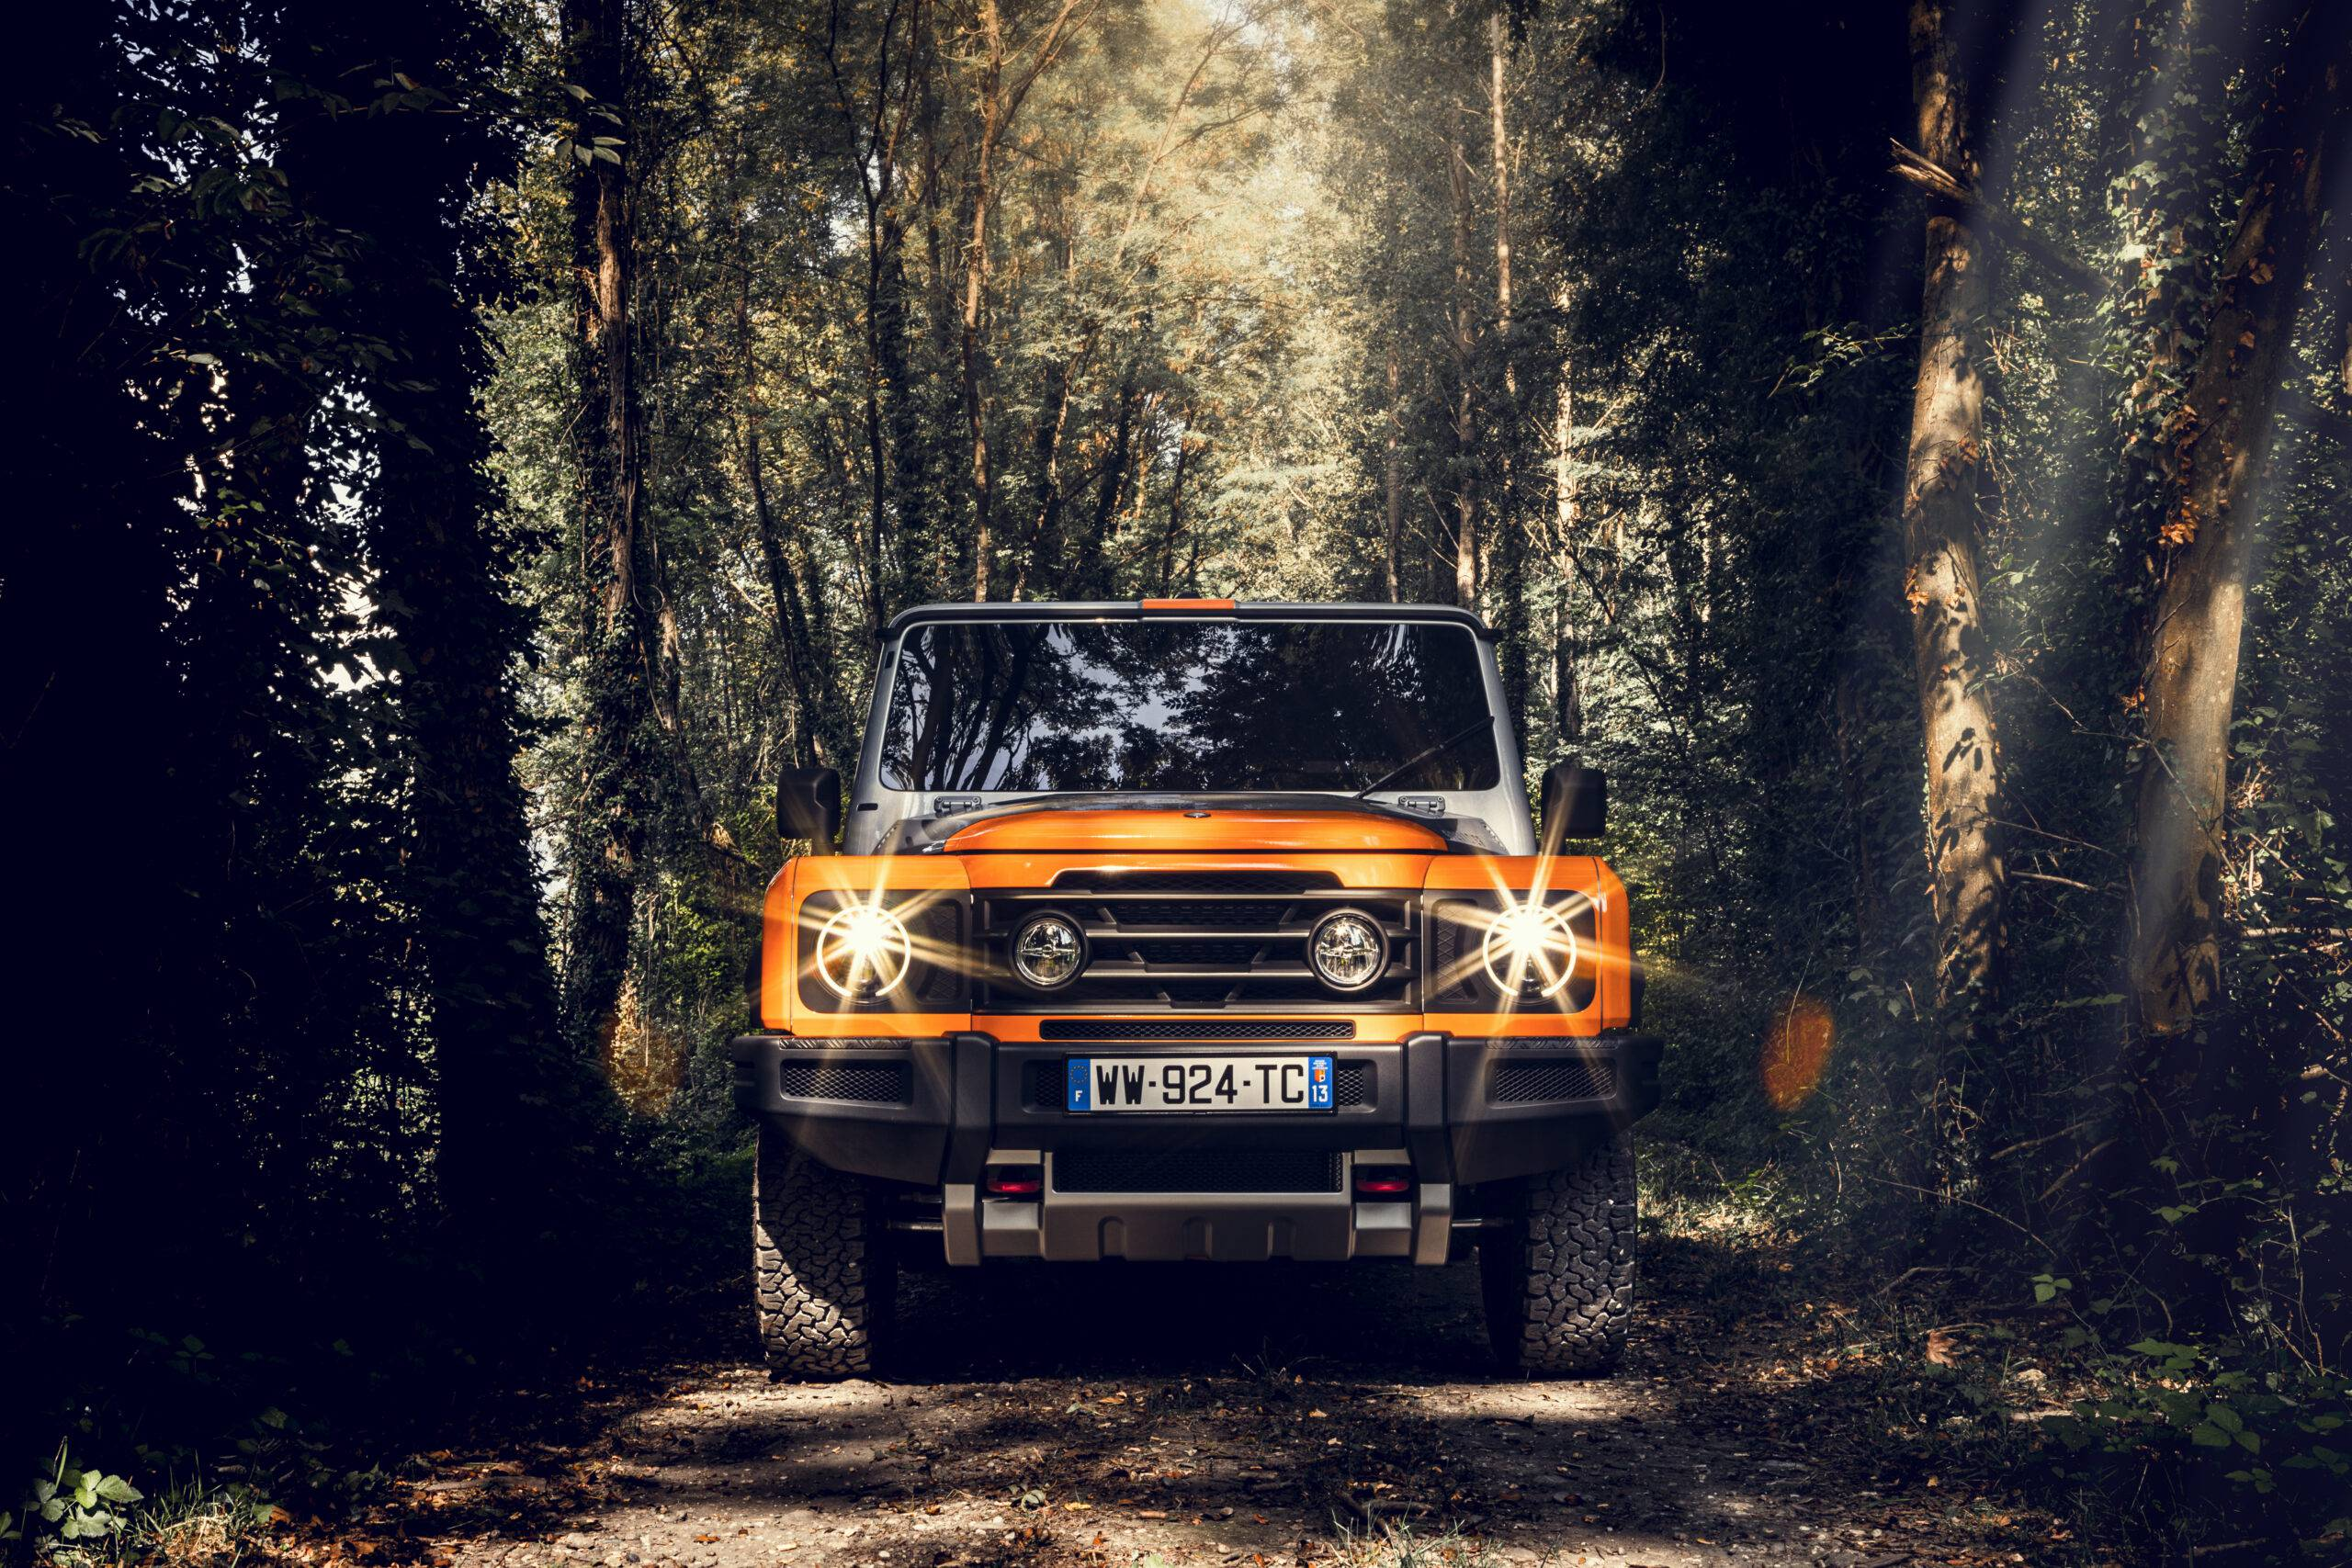 The orange and silver INEOS Grenadier's front end with lights on in a thick forest.